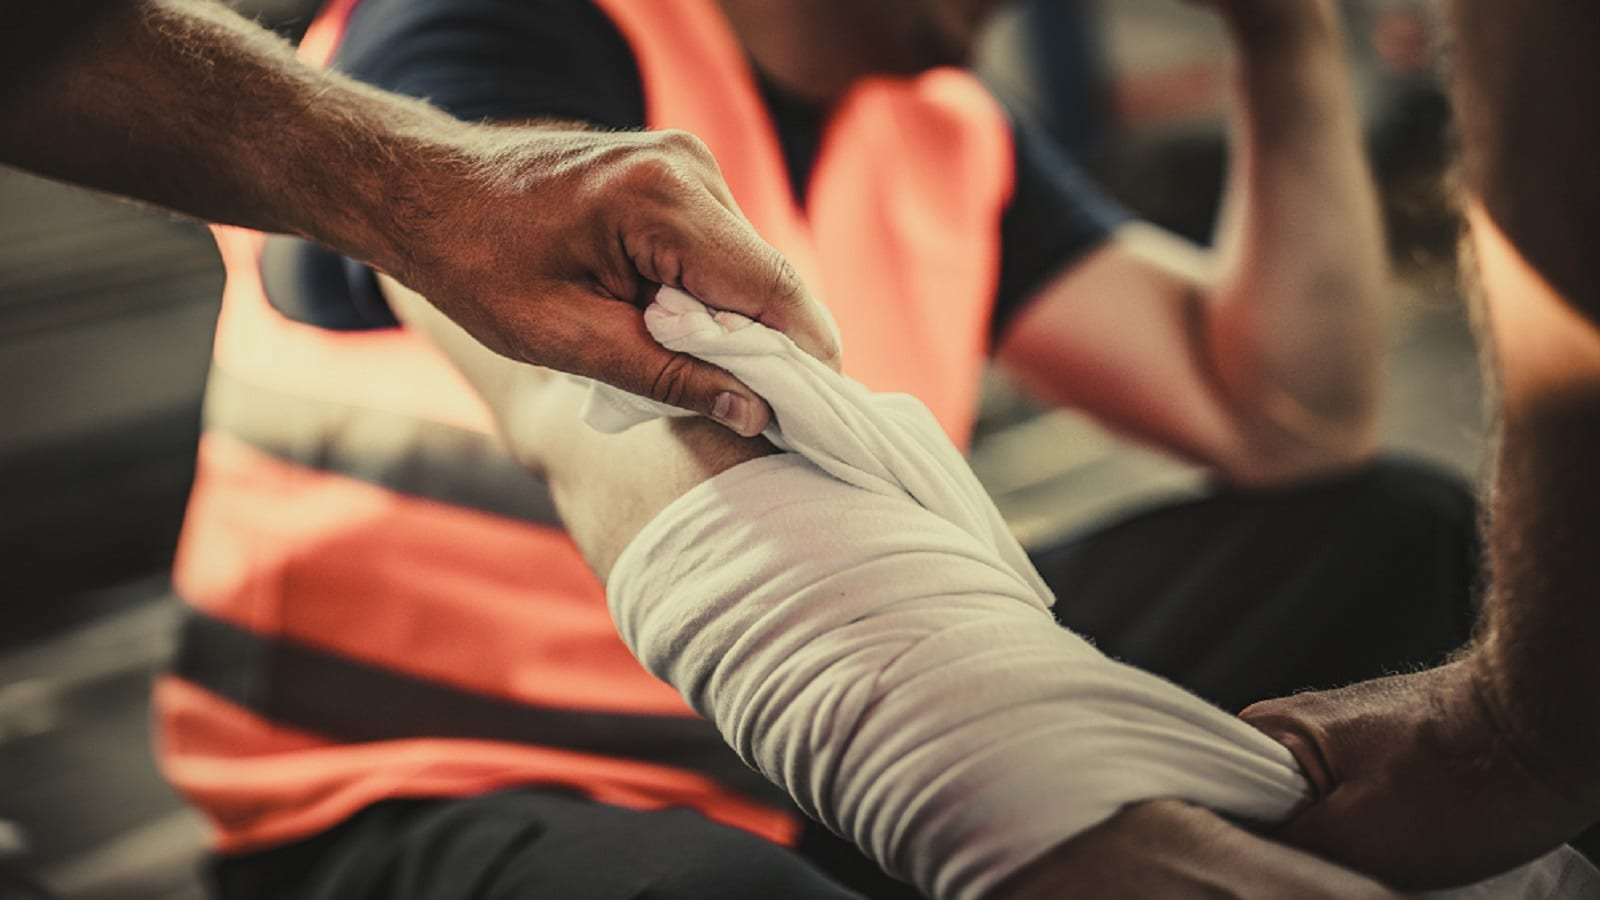 Blue Collar Worker With An Injured Arm Stock Photo